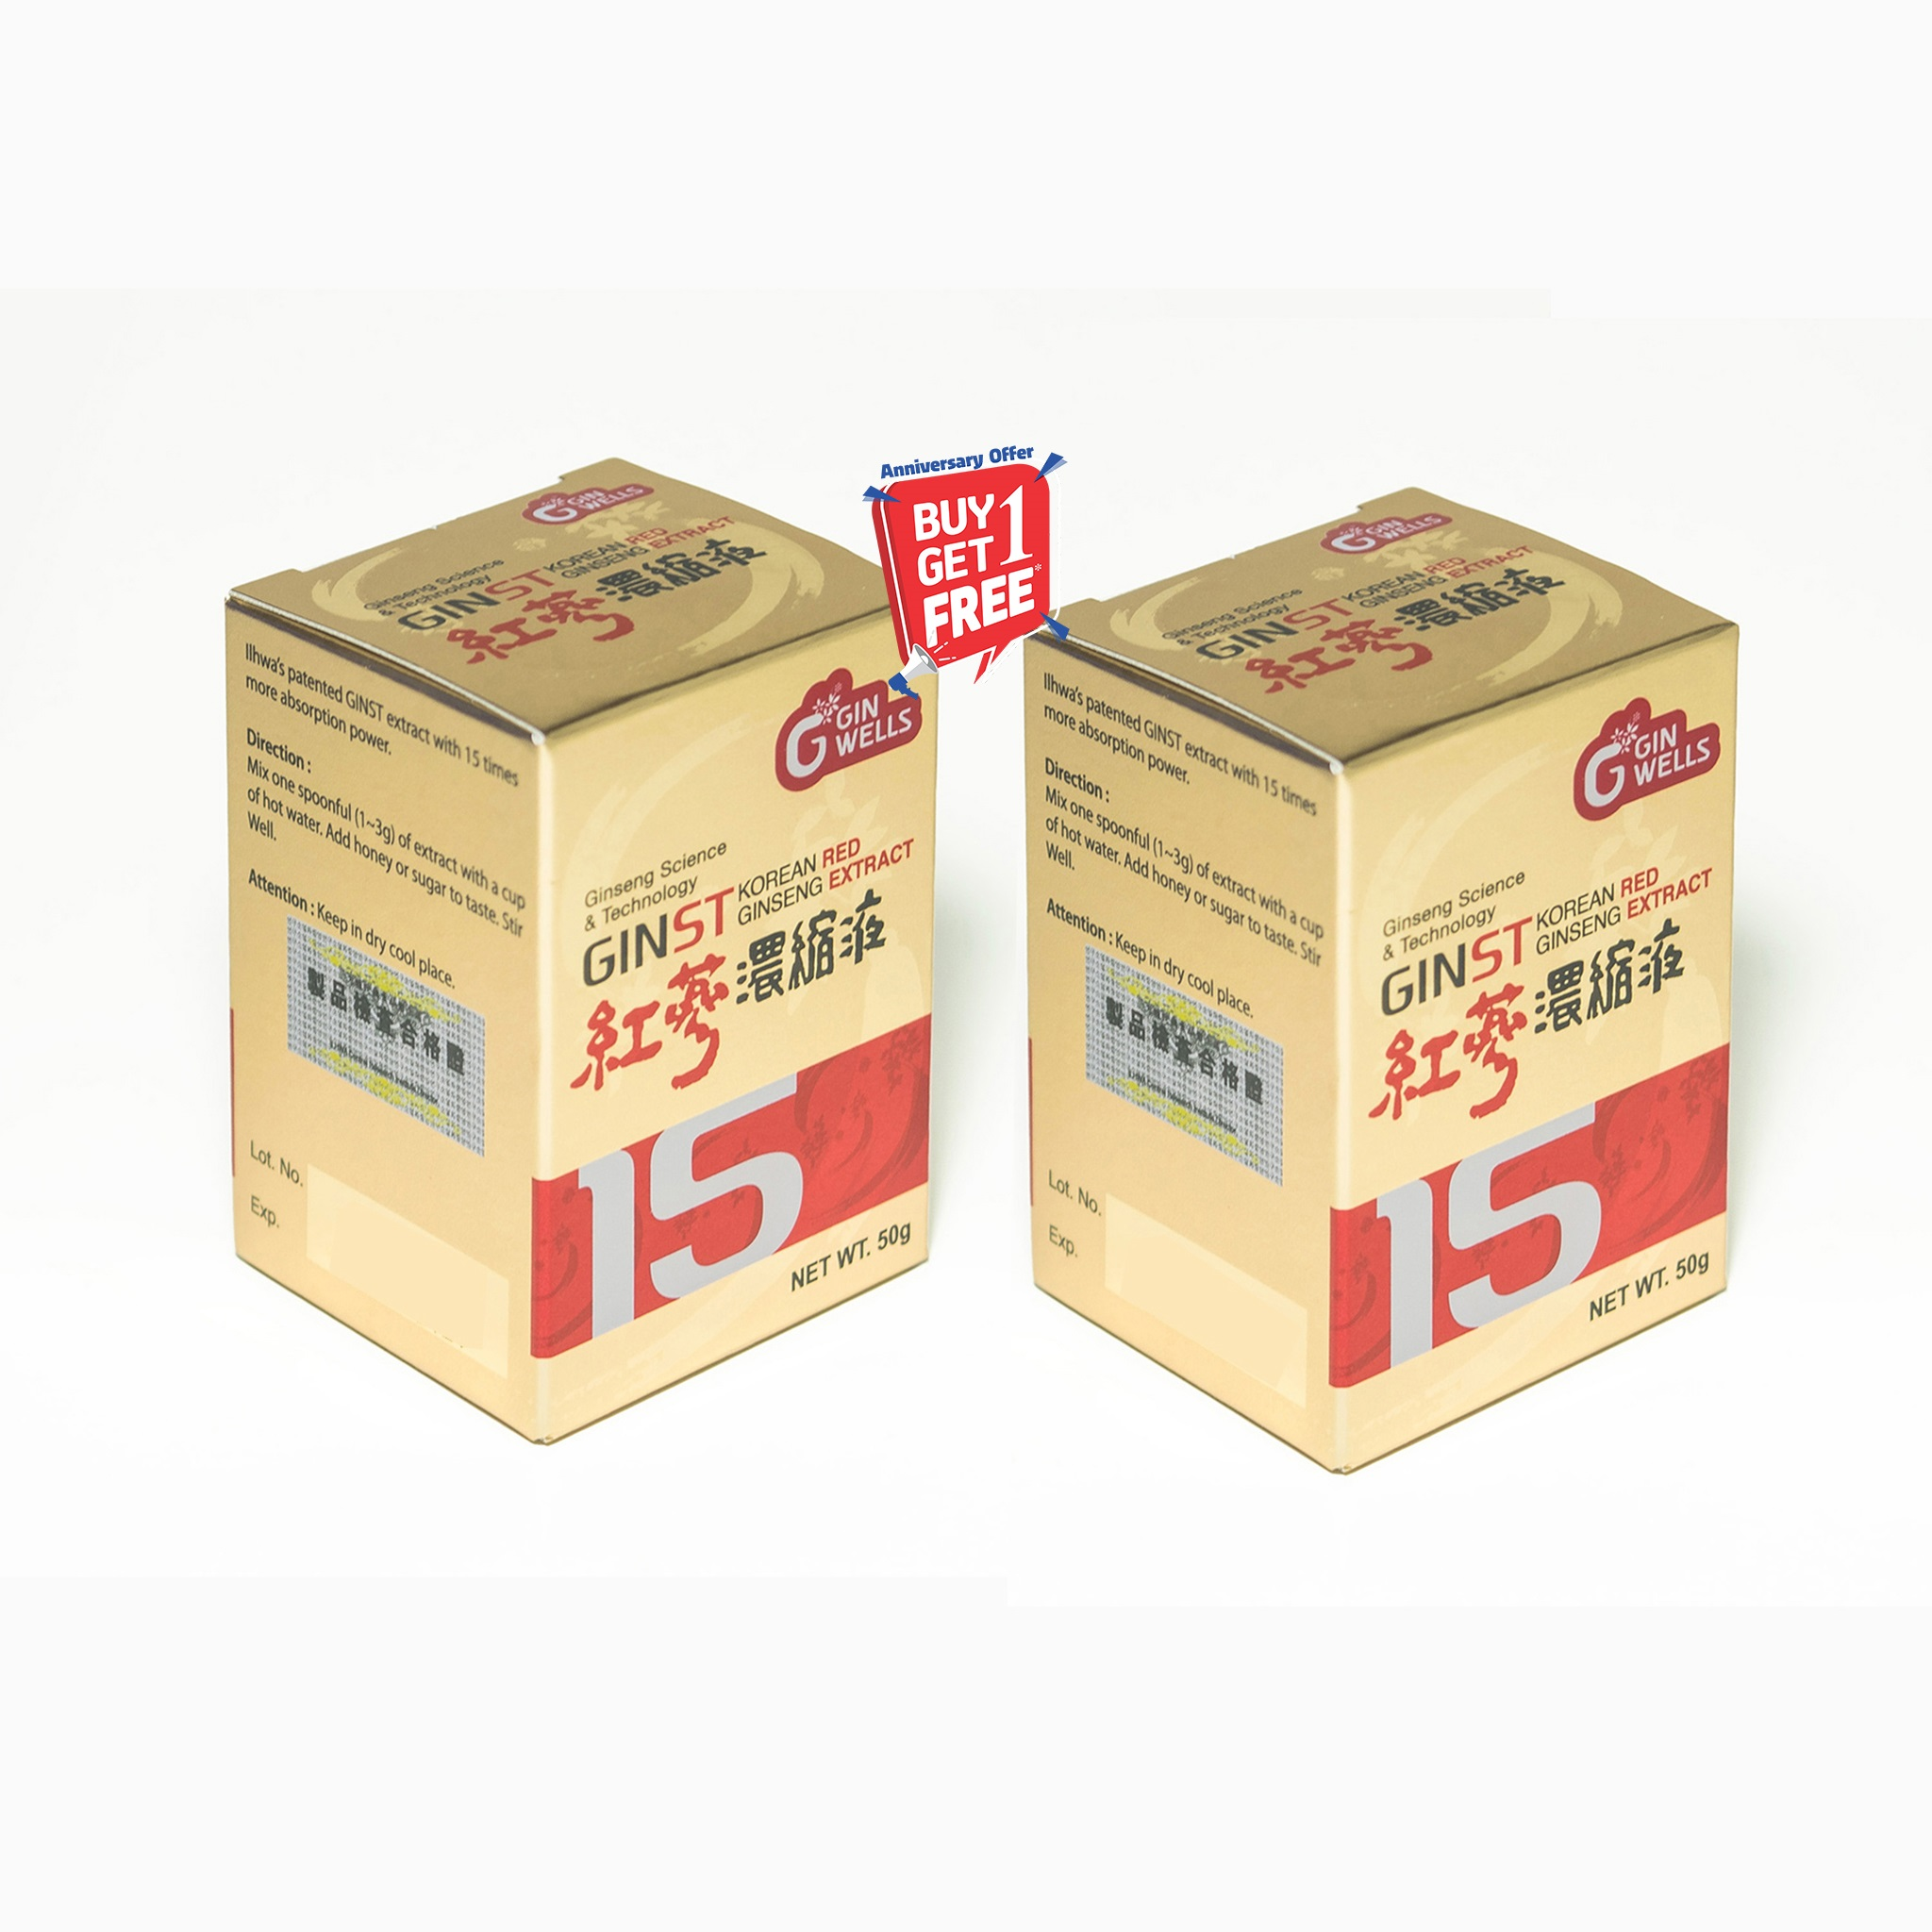 GINST 15 Korean Red Ginseng Extract  50, gms Buy 1 Get 1 Free